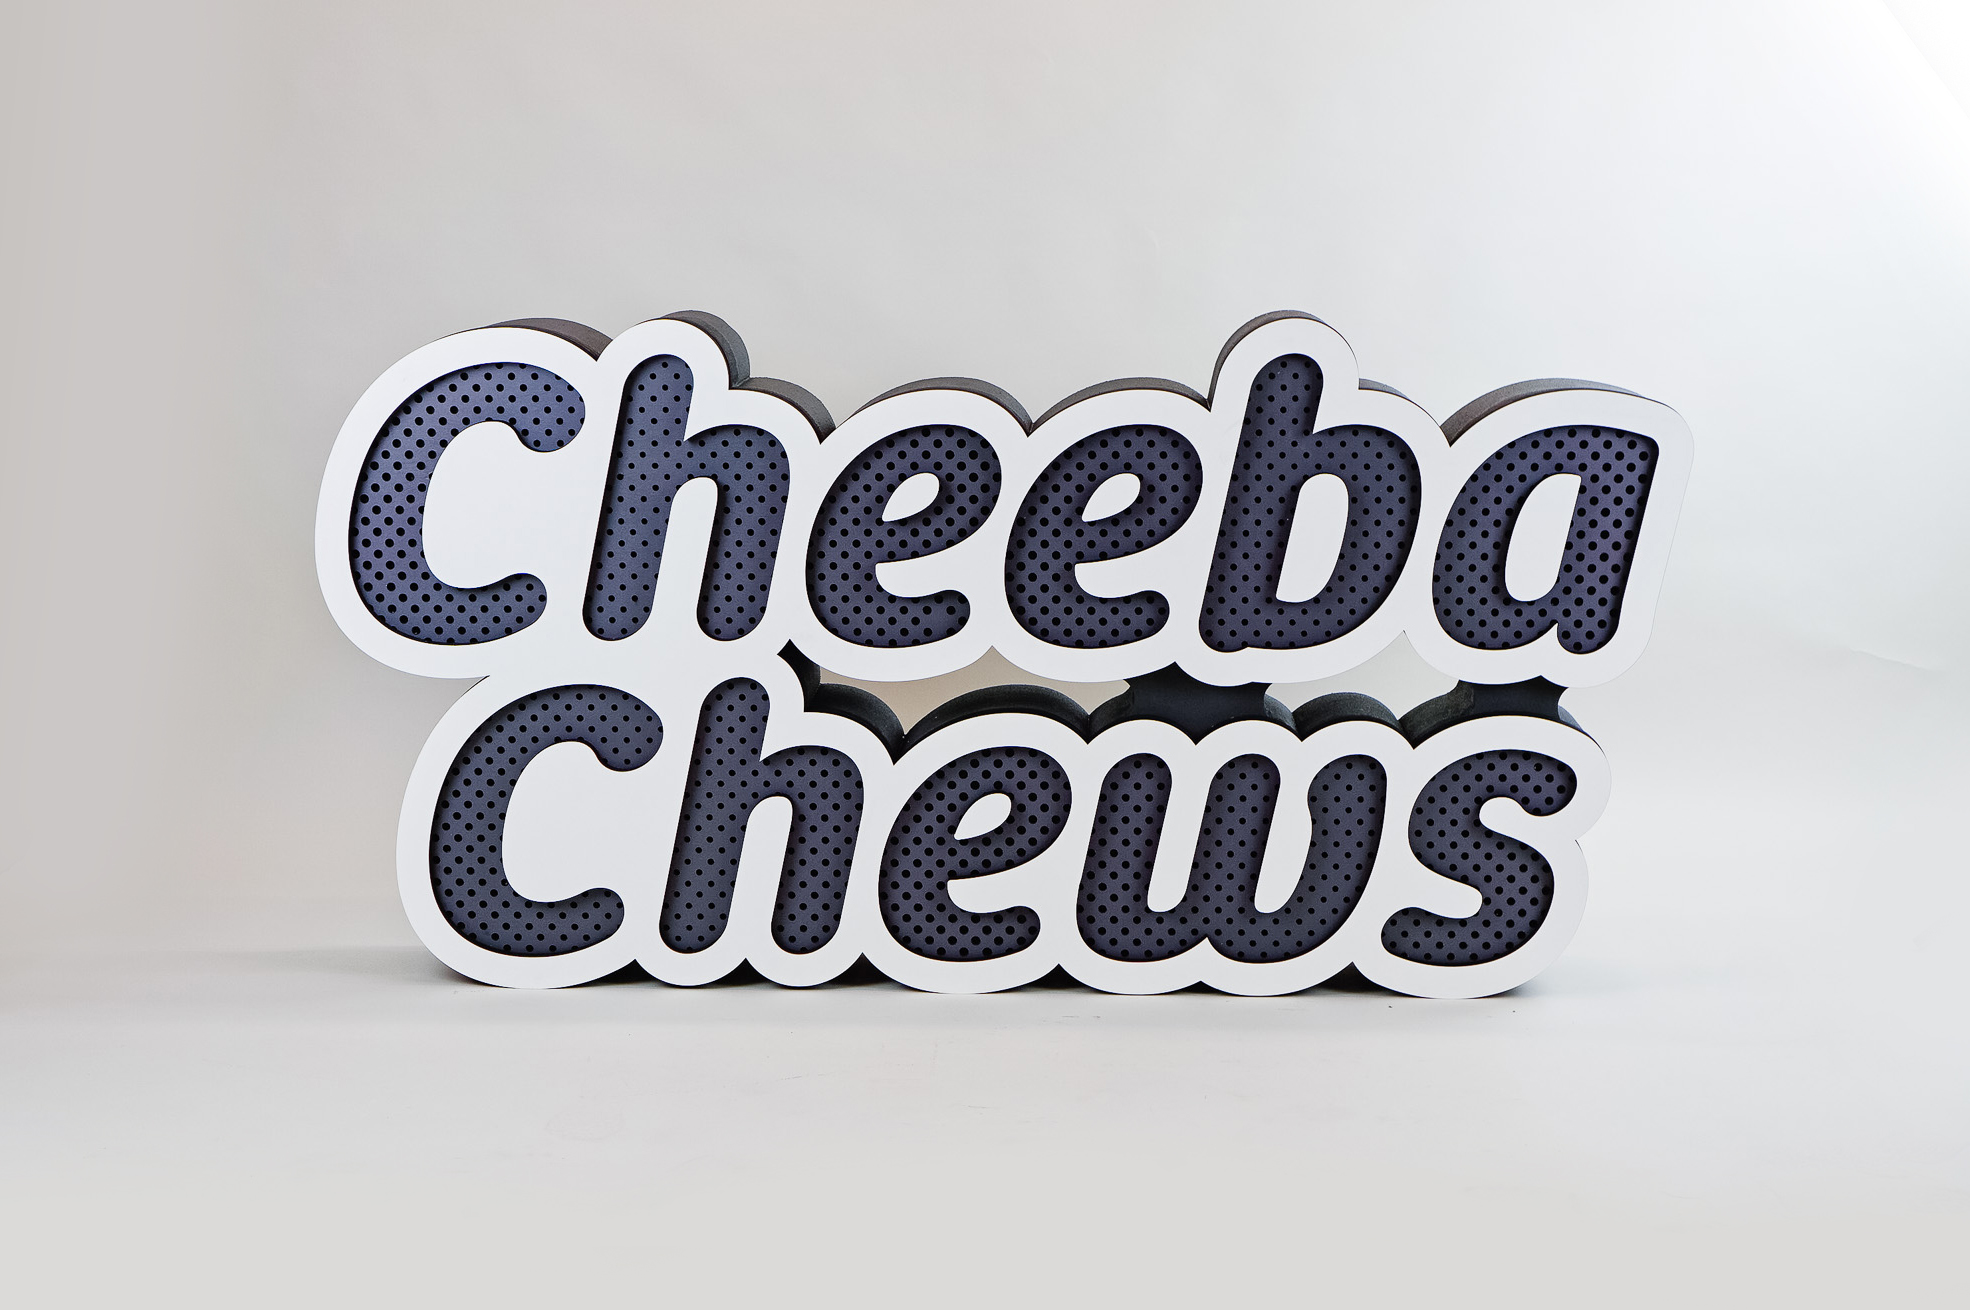 Dimensional large grey and white freestanding tradeshow floor sign for Cheeba Chews, makers of cannabis-infused edibles.